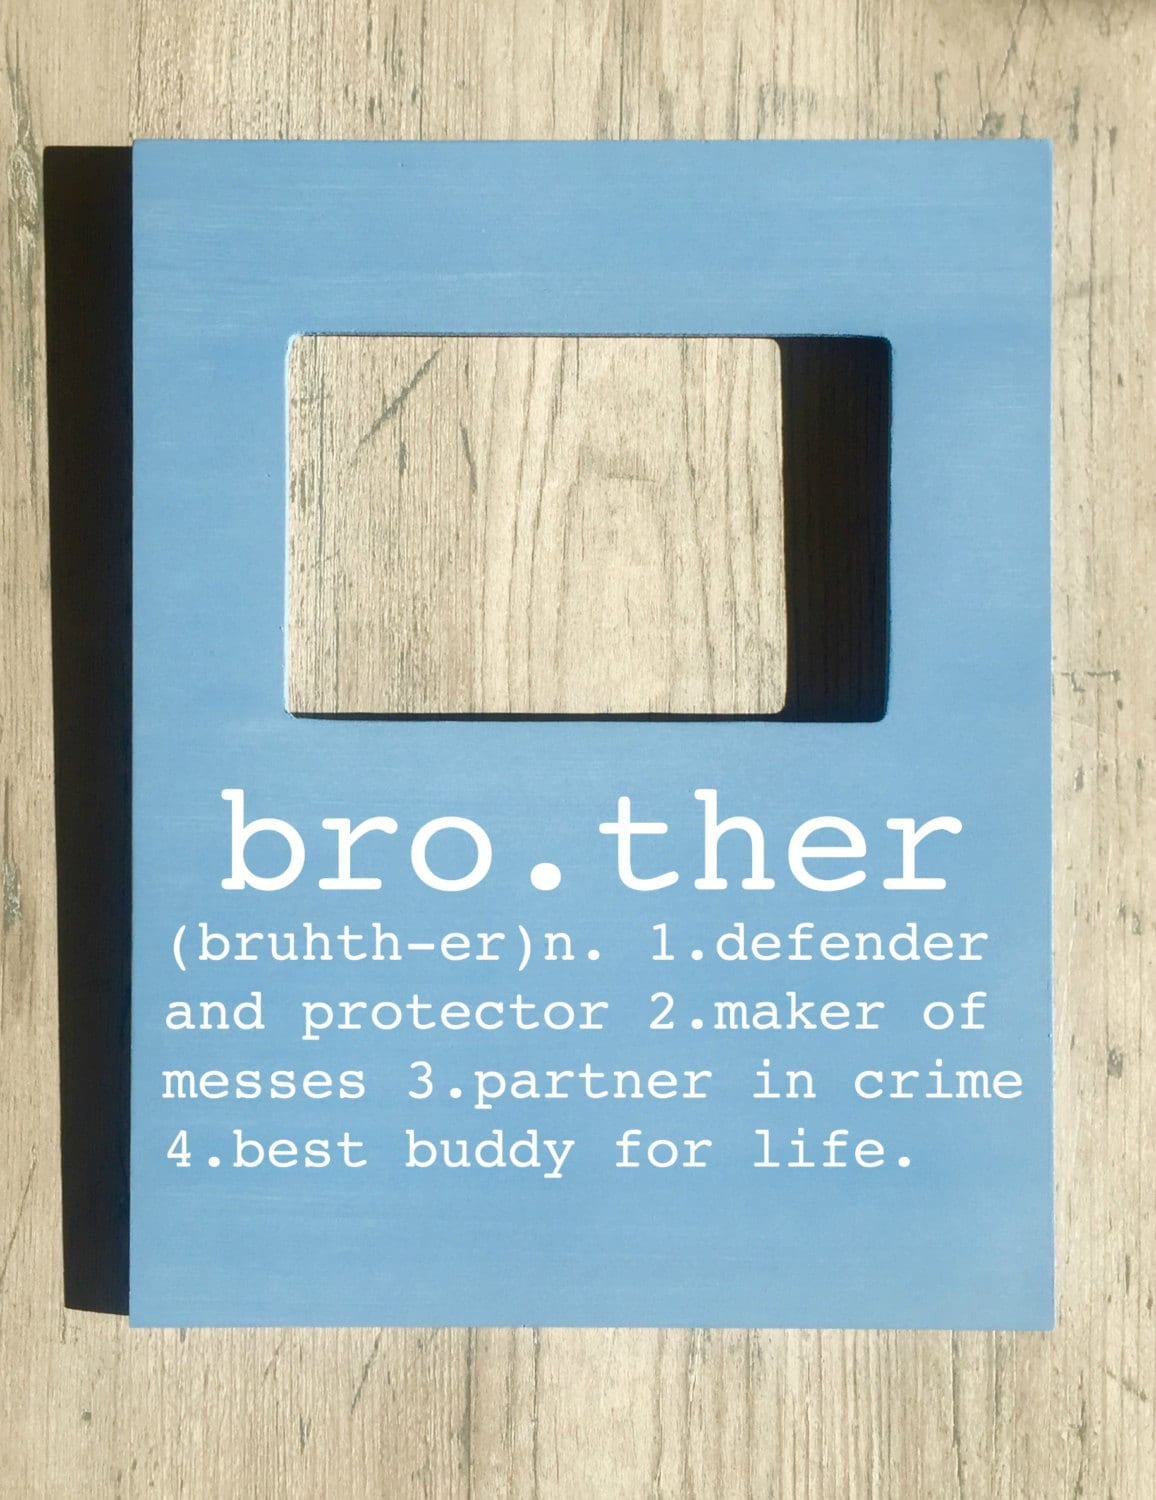 Brother picture frame brother buddy for life big brother little 800 shipping jeuxipadfo Choice Image